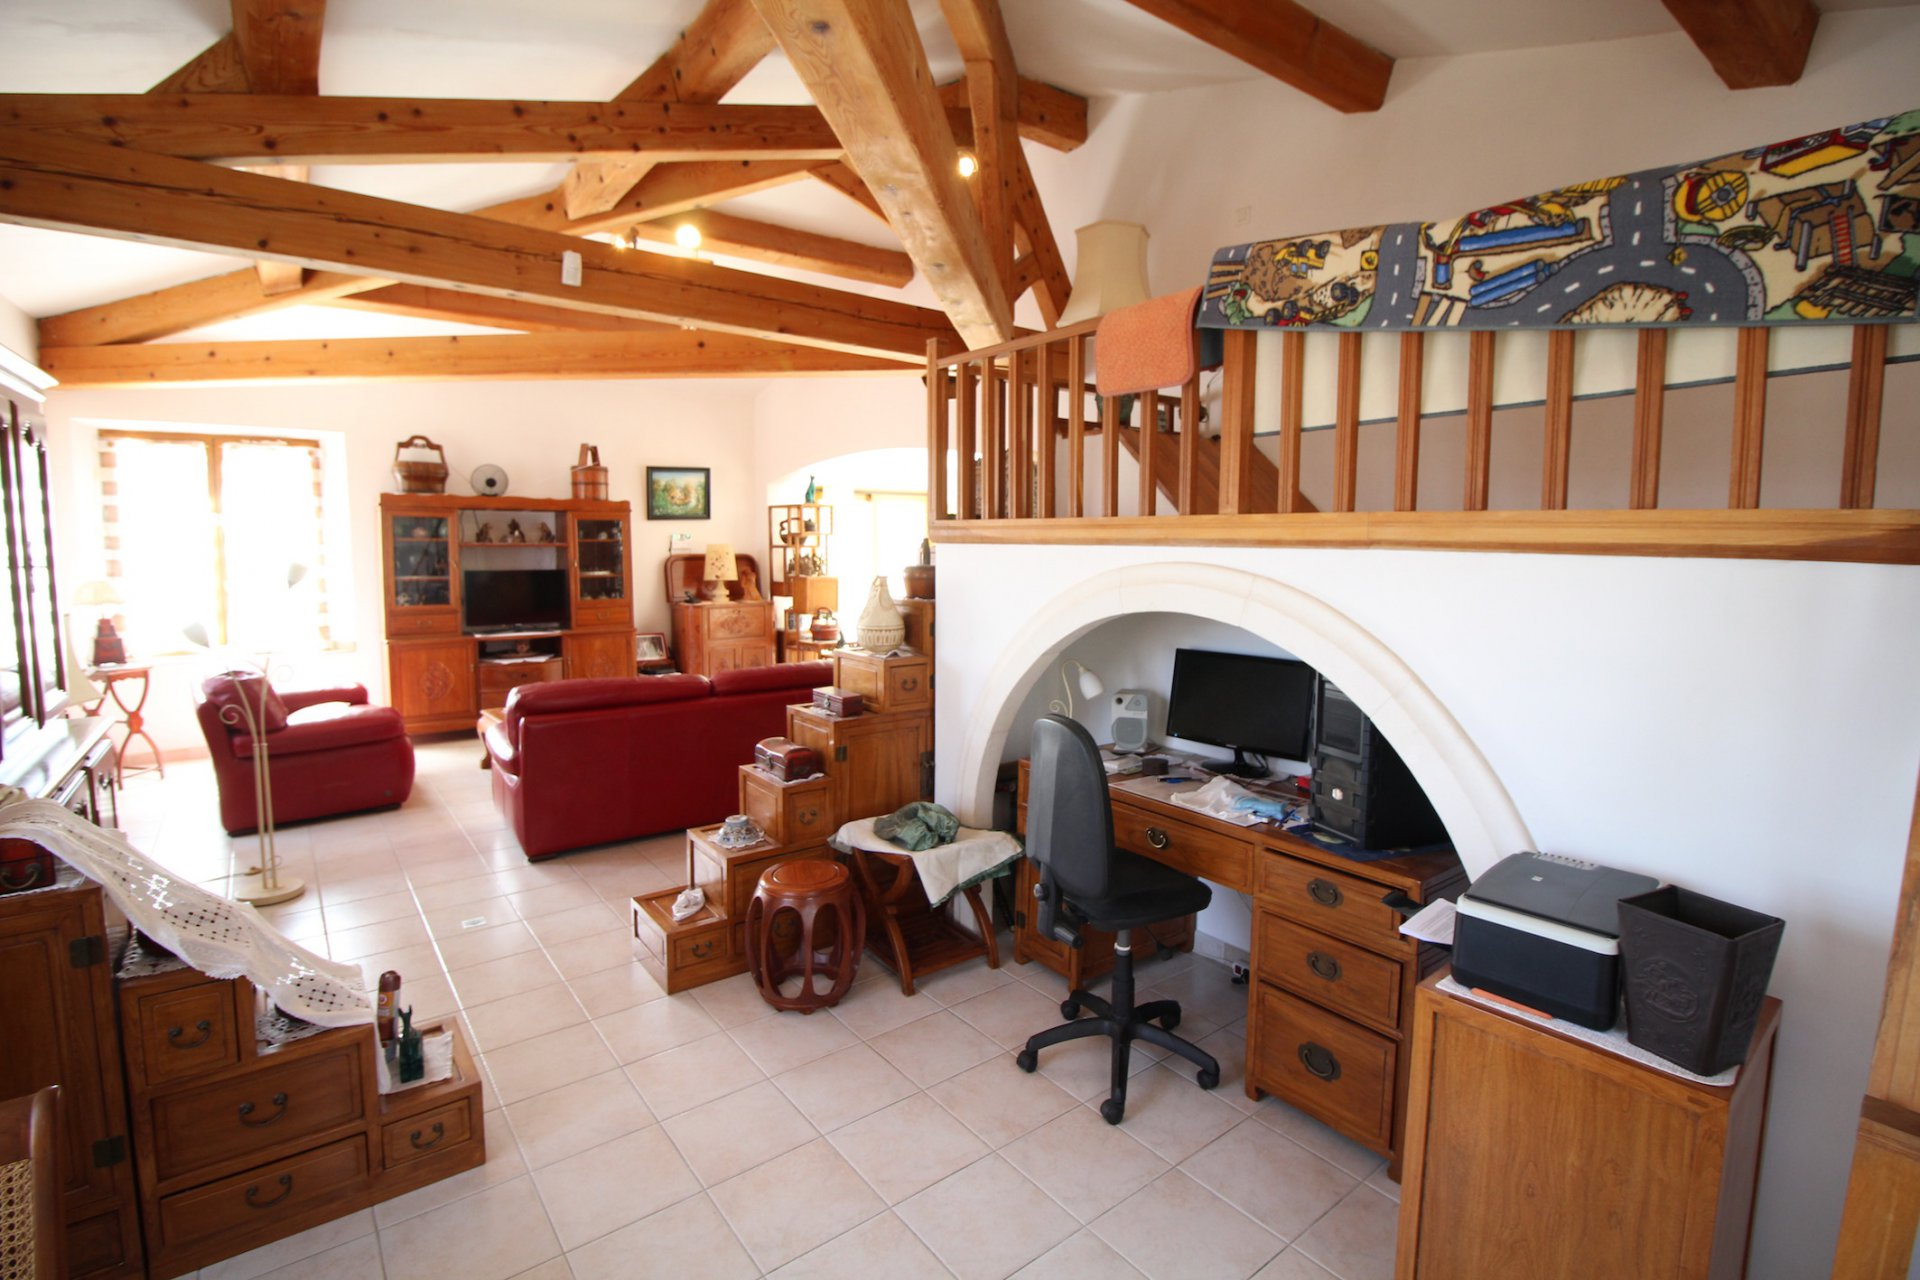 Flassans sur Issole, a lovely house at 30 minutes from the seaside